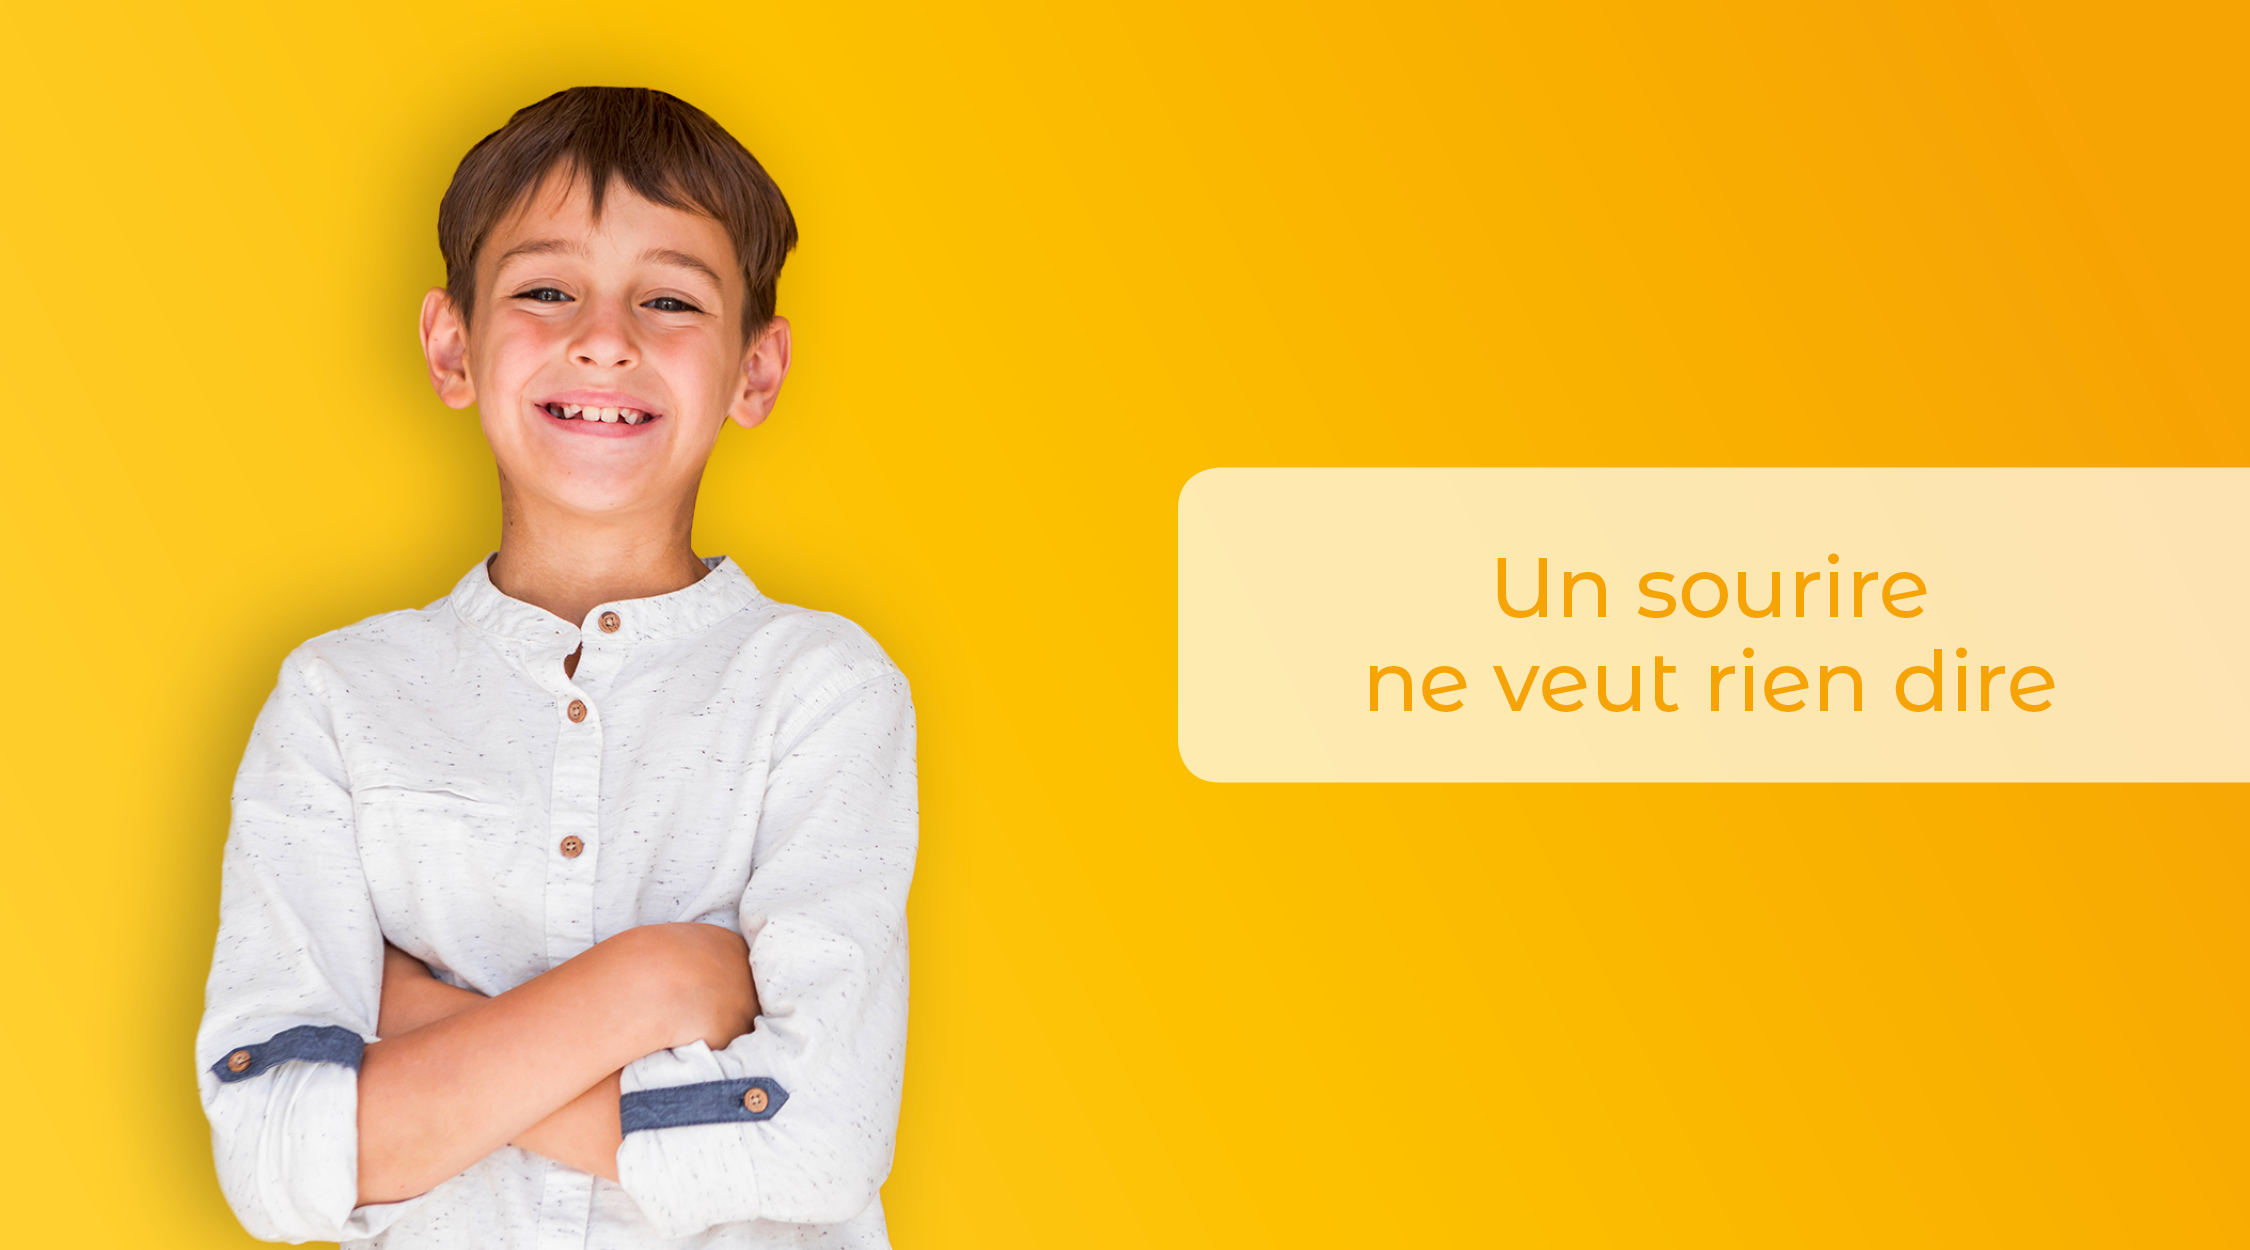 CAMPAGNE DOULEUR INVISIBLE SLIDE 1-5